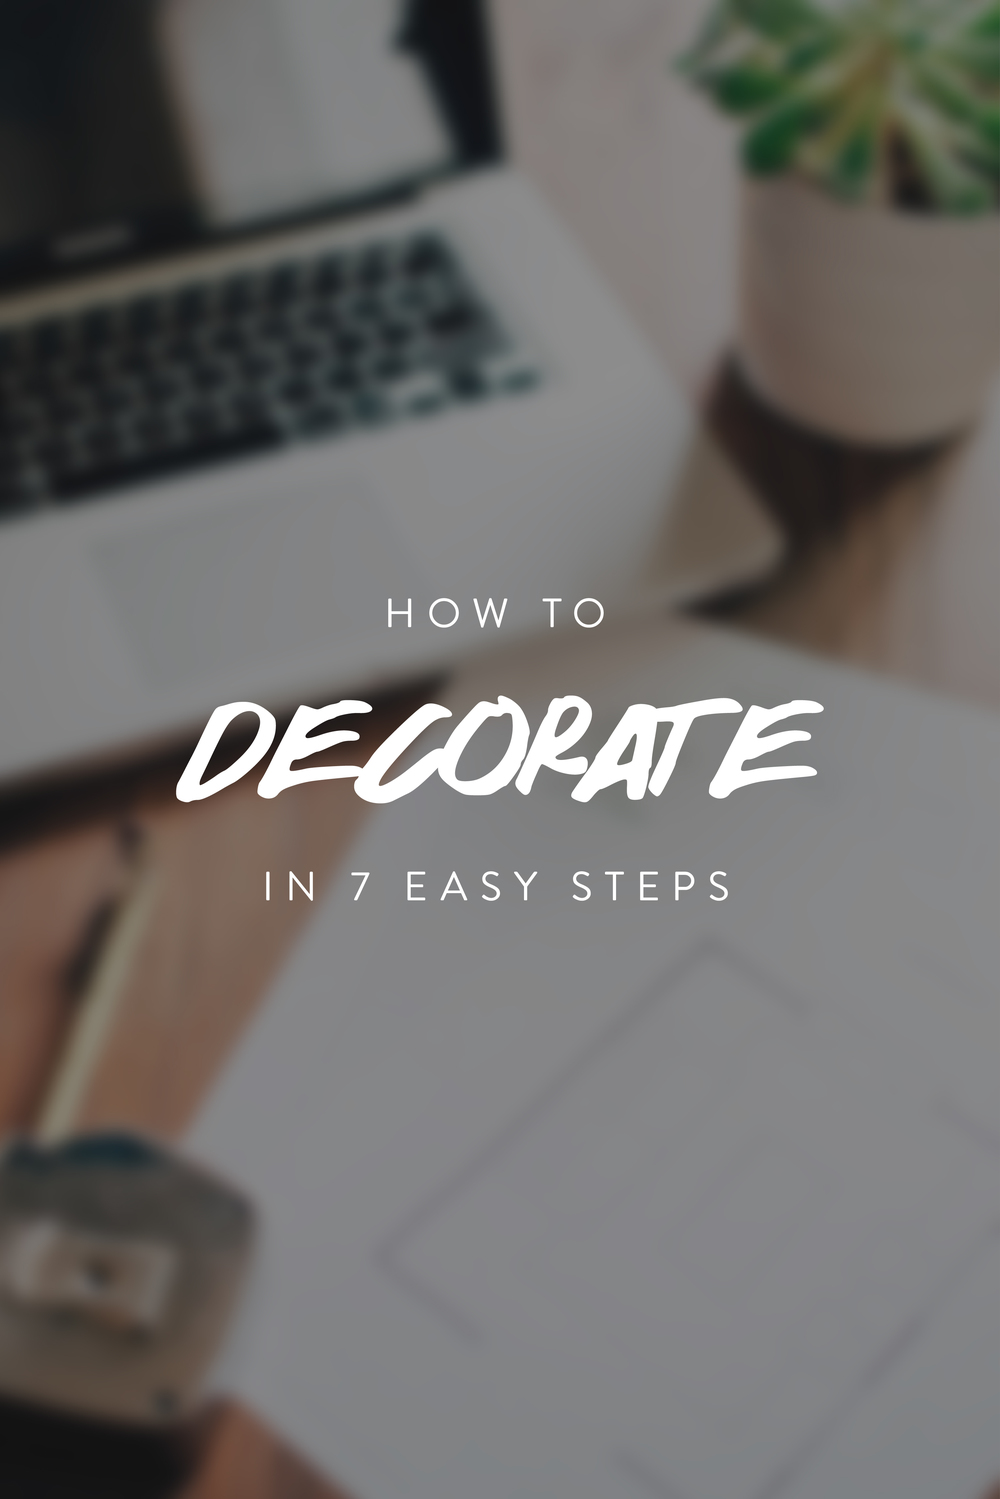 How To Decorate Your Space In 7 Easy Steps